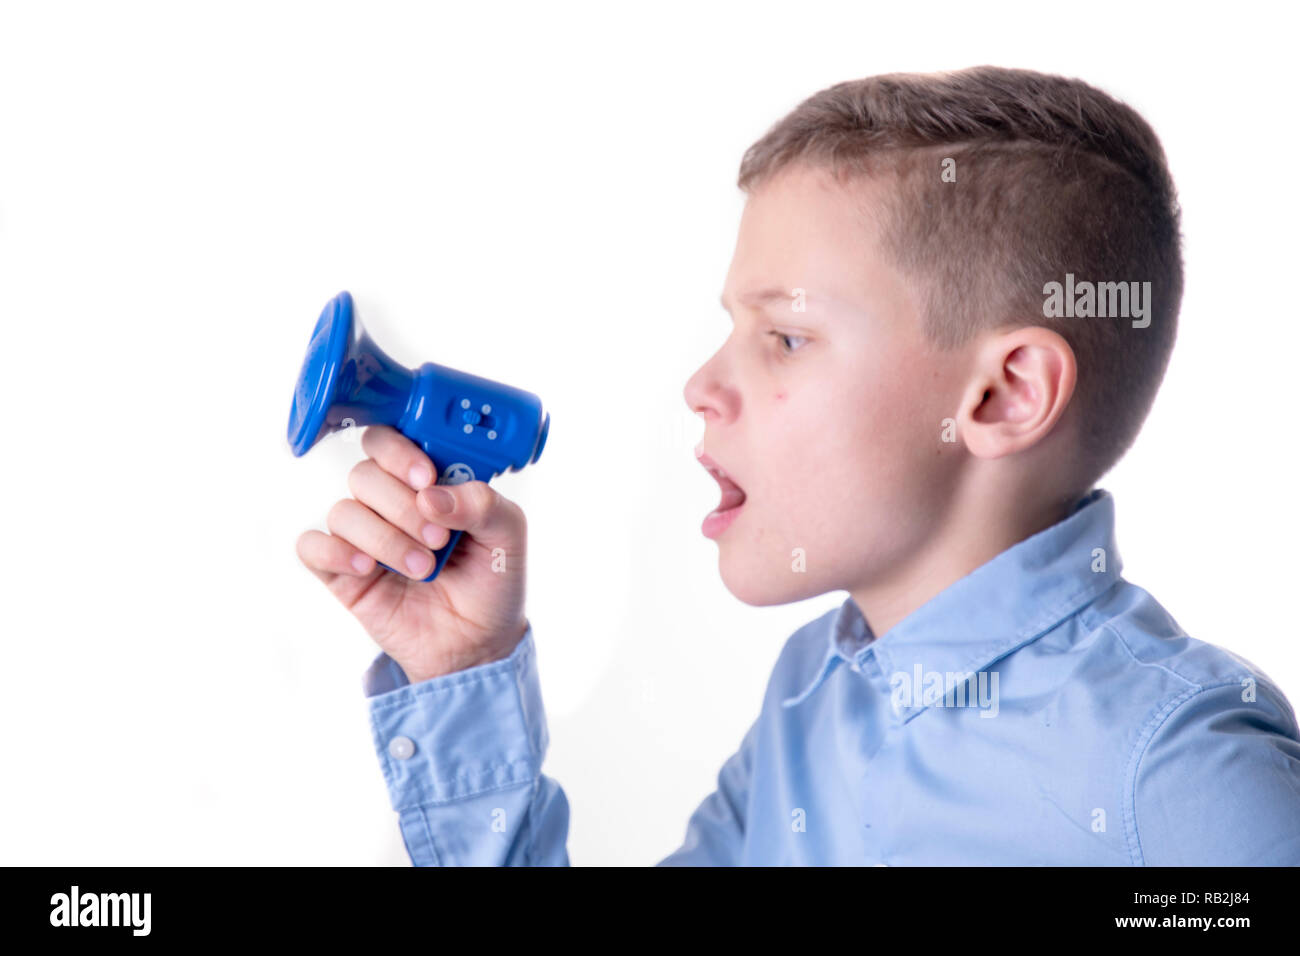 Boy shouting very loudly into a small blue megaphone with open mouth - Stock Image